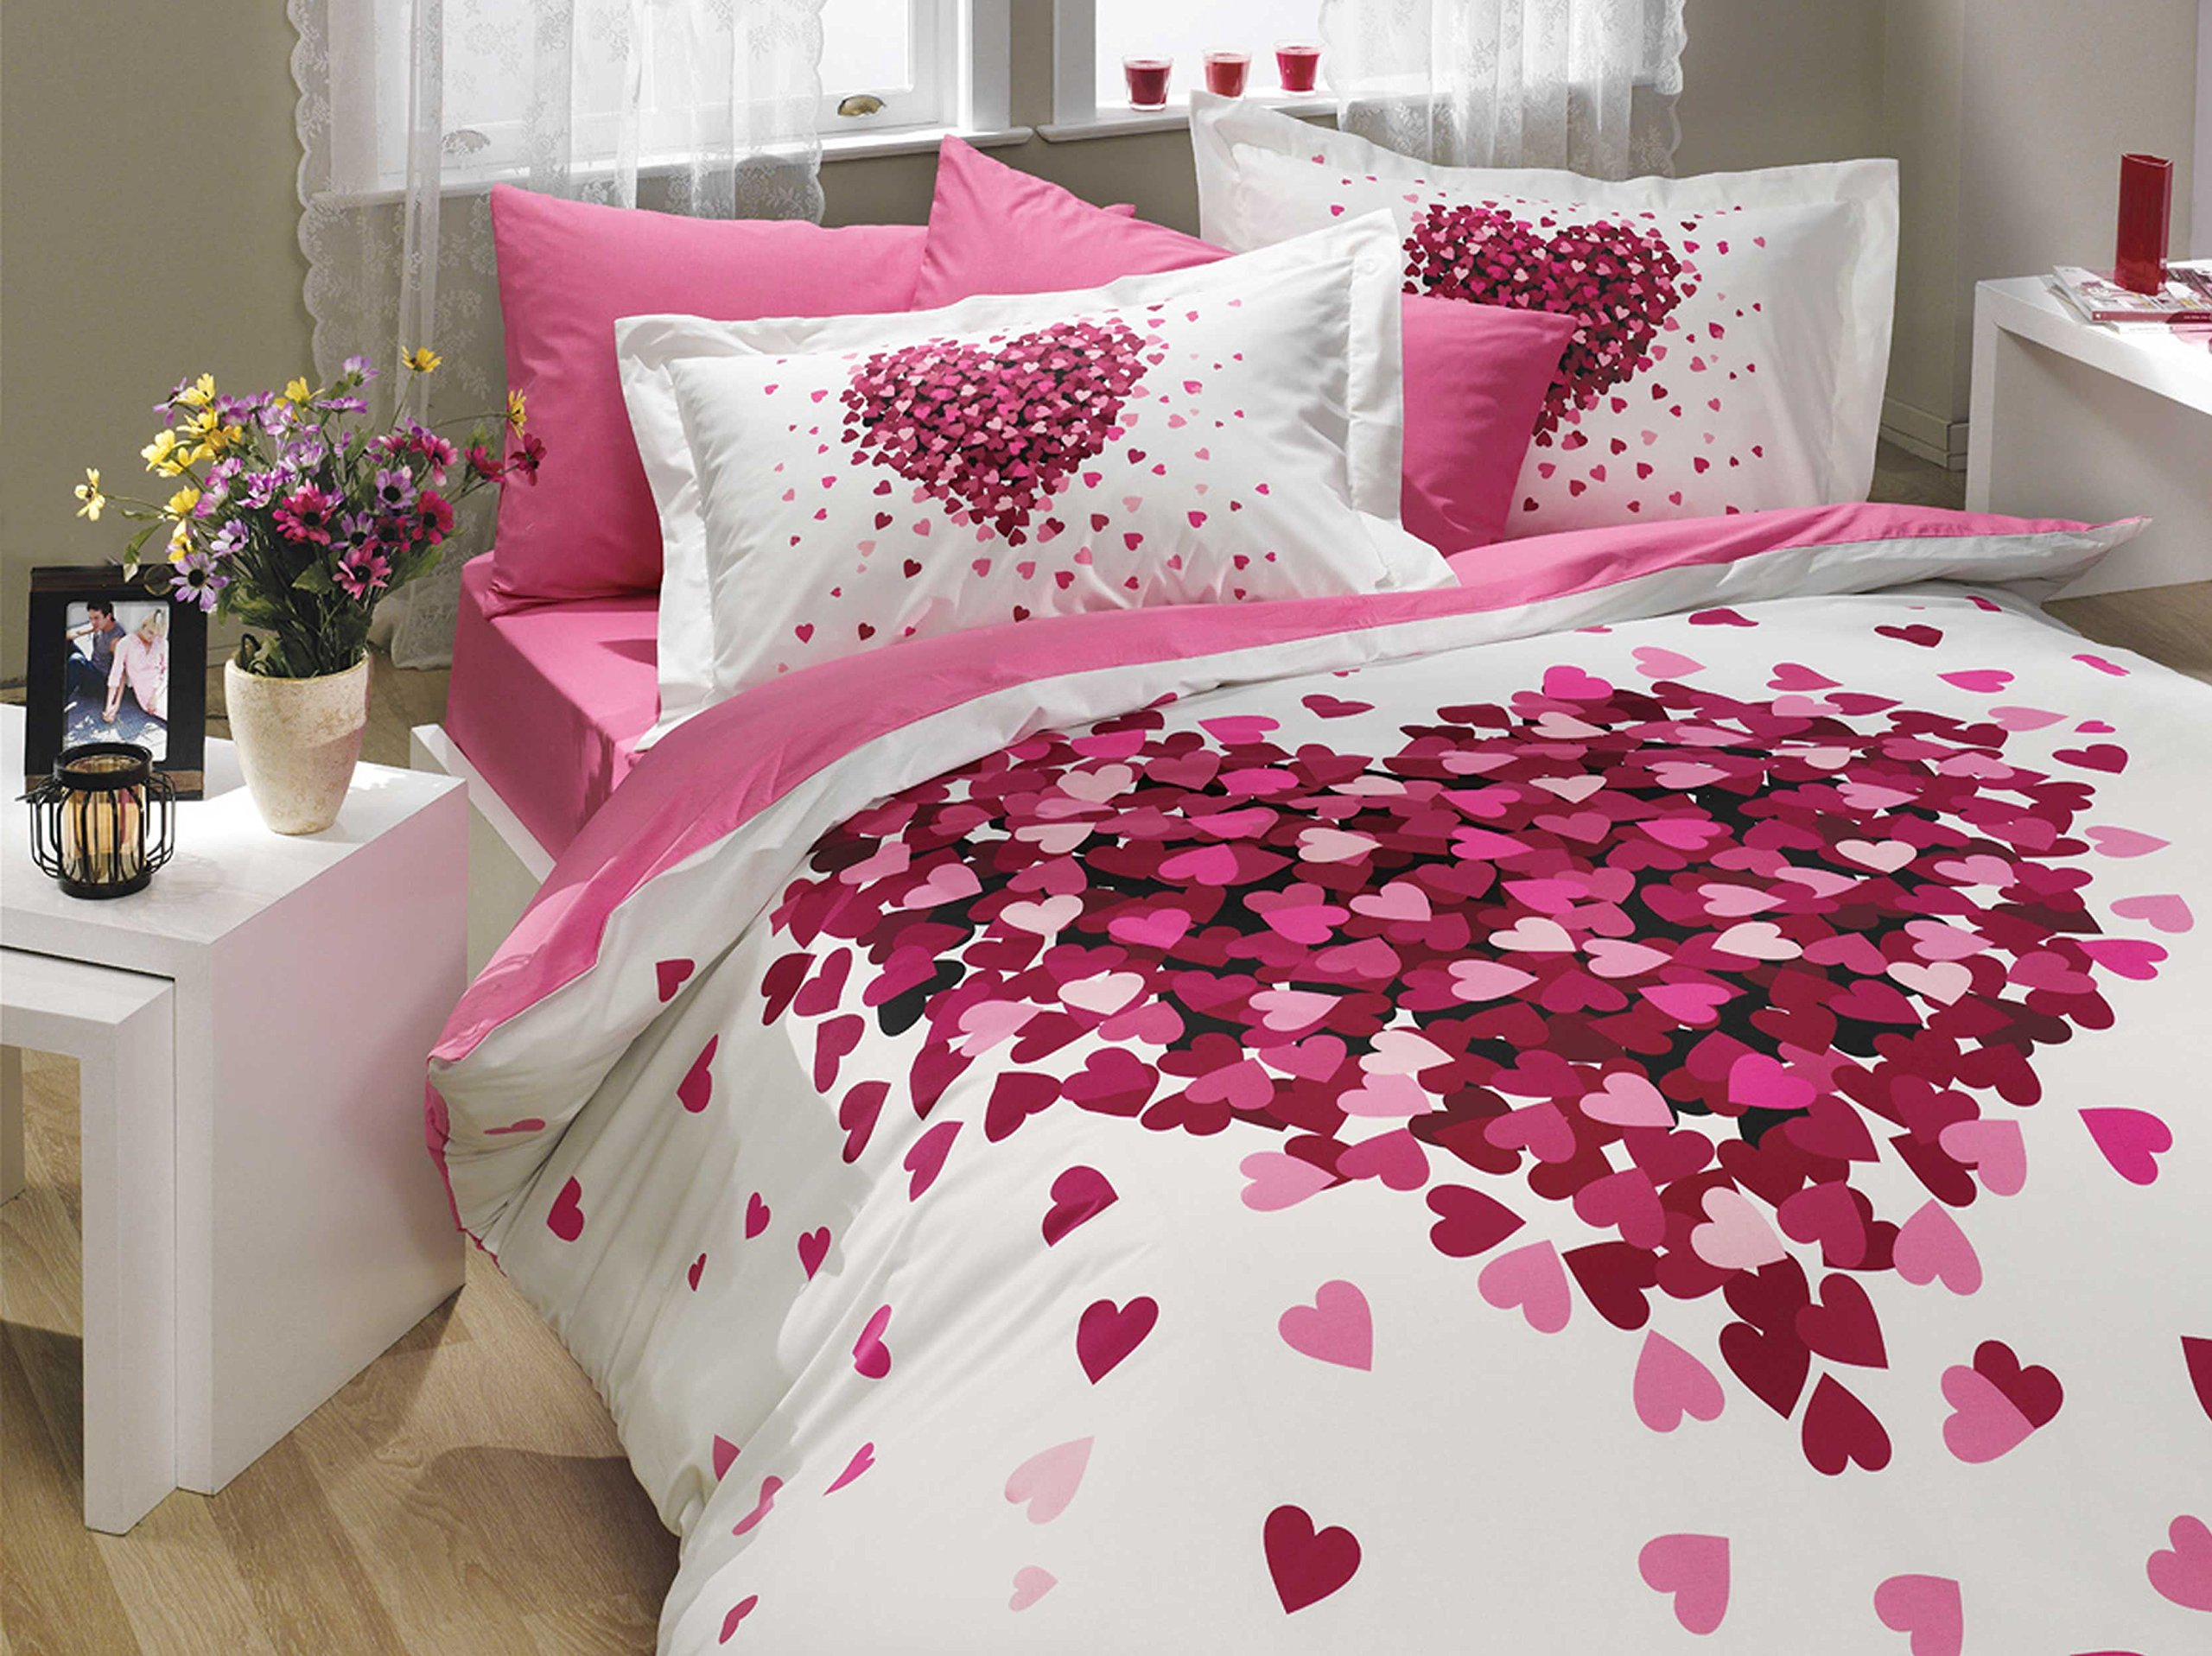 Bedding Set Heart Love Themed with Cotton Duvet Cover Romantic Design, Twin Size - 3 Pieces, Pink Lilac White by LaModaHome (Image #1)